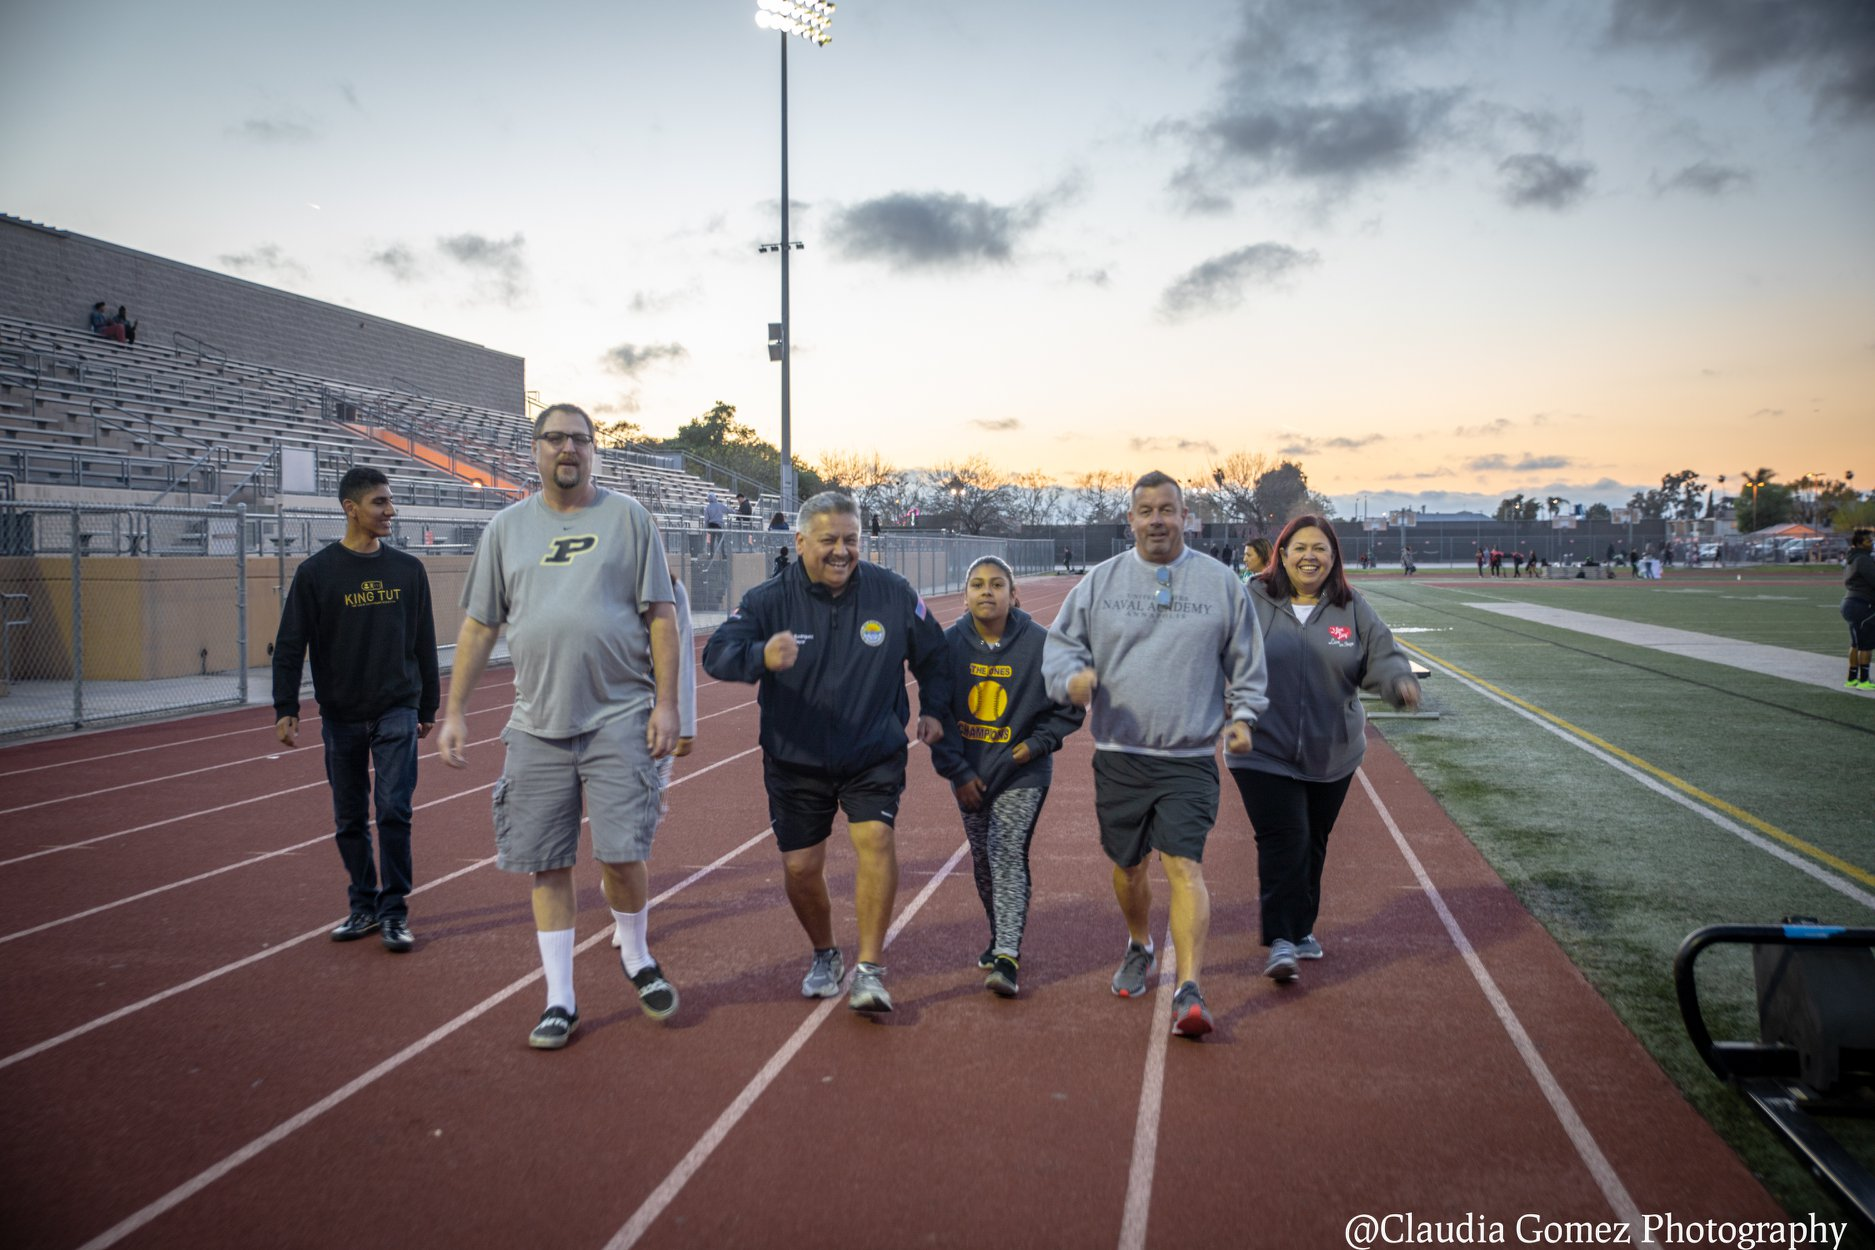 Mayor Rick Rodriguez leads a walk on the Downey High School track. Photo by Claudia Gomez